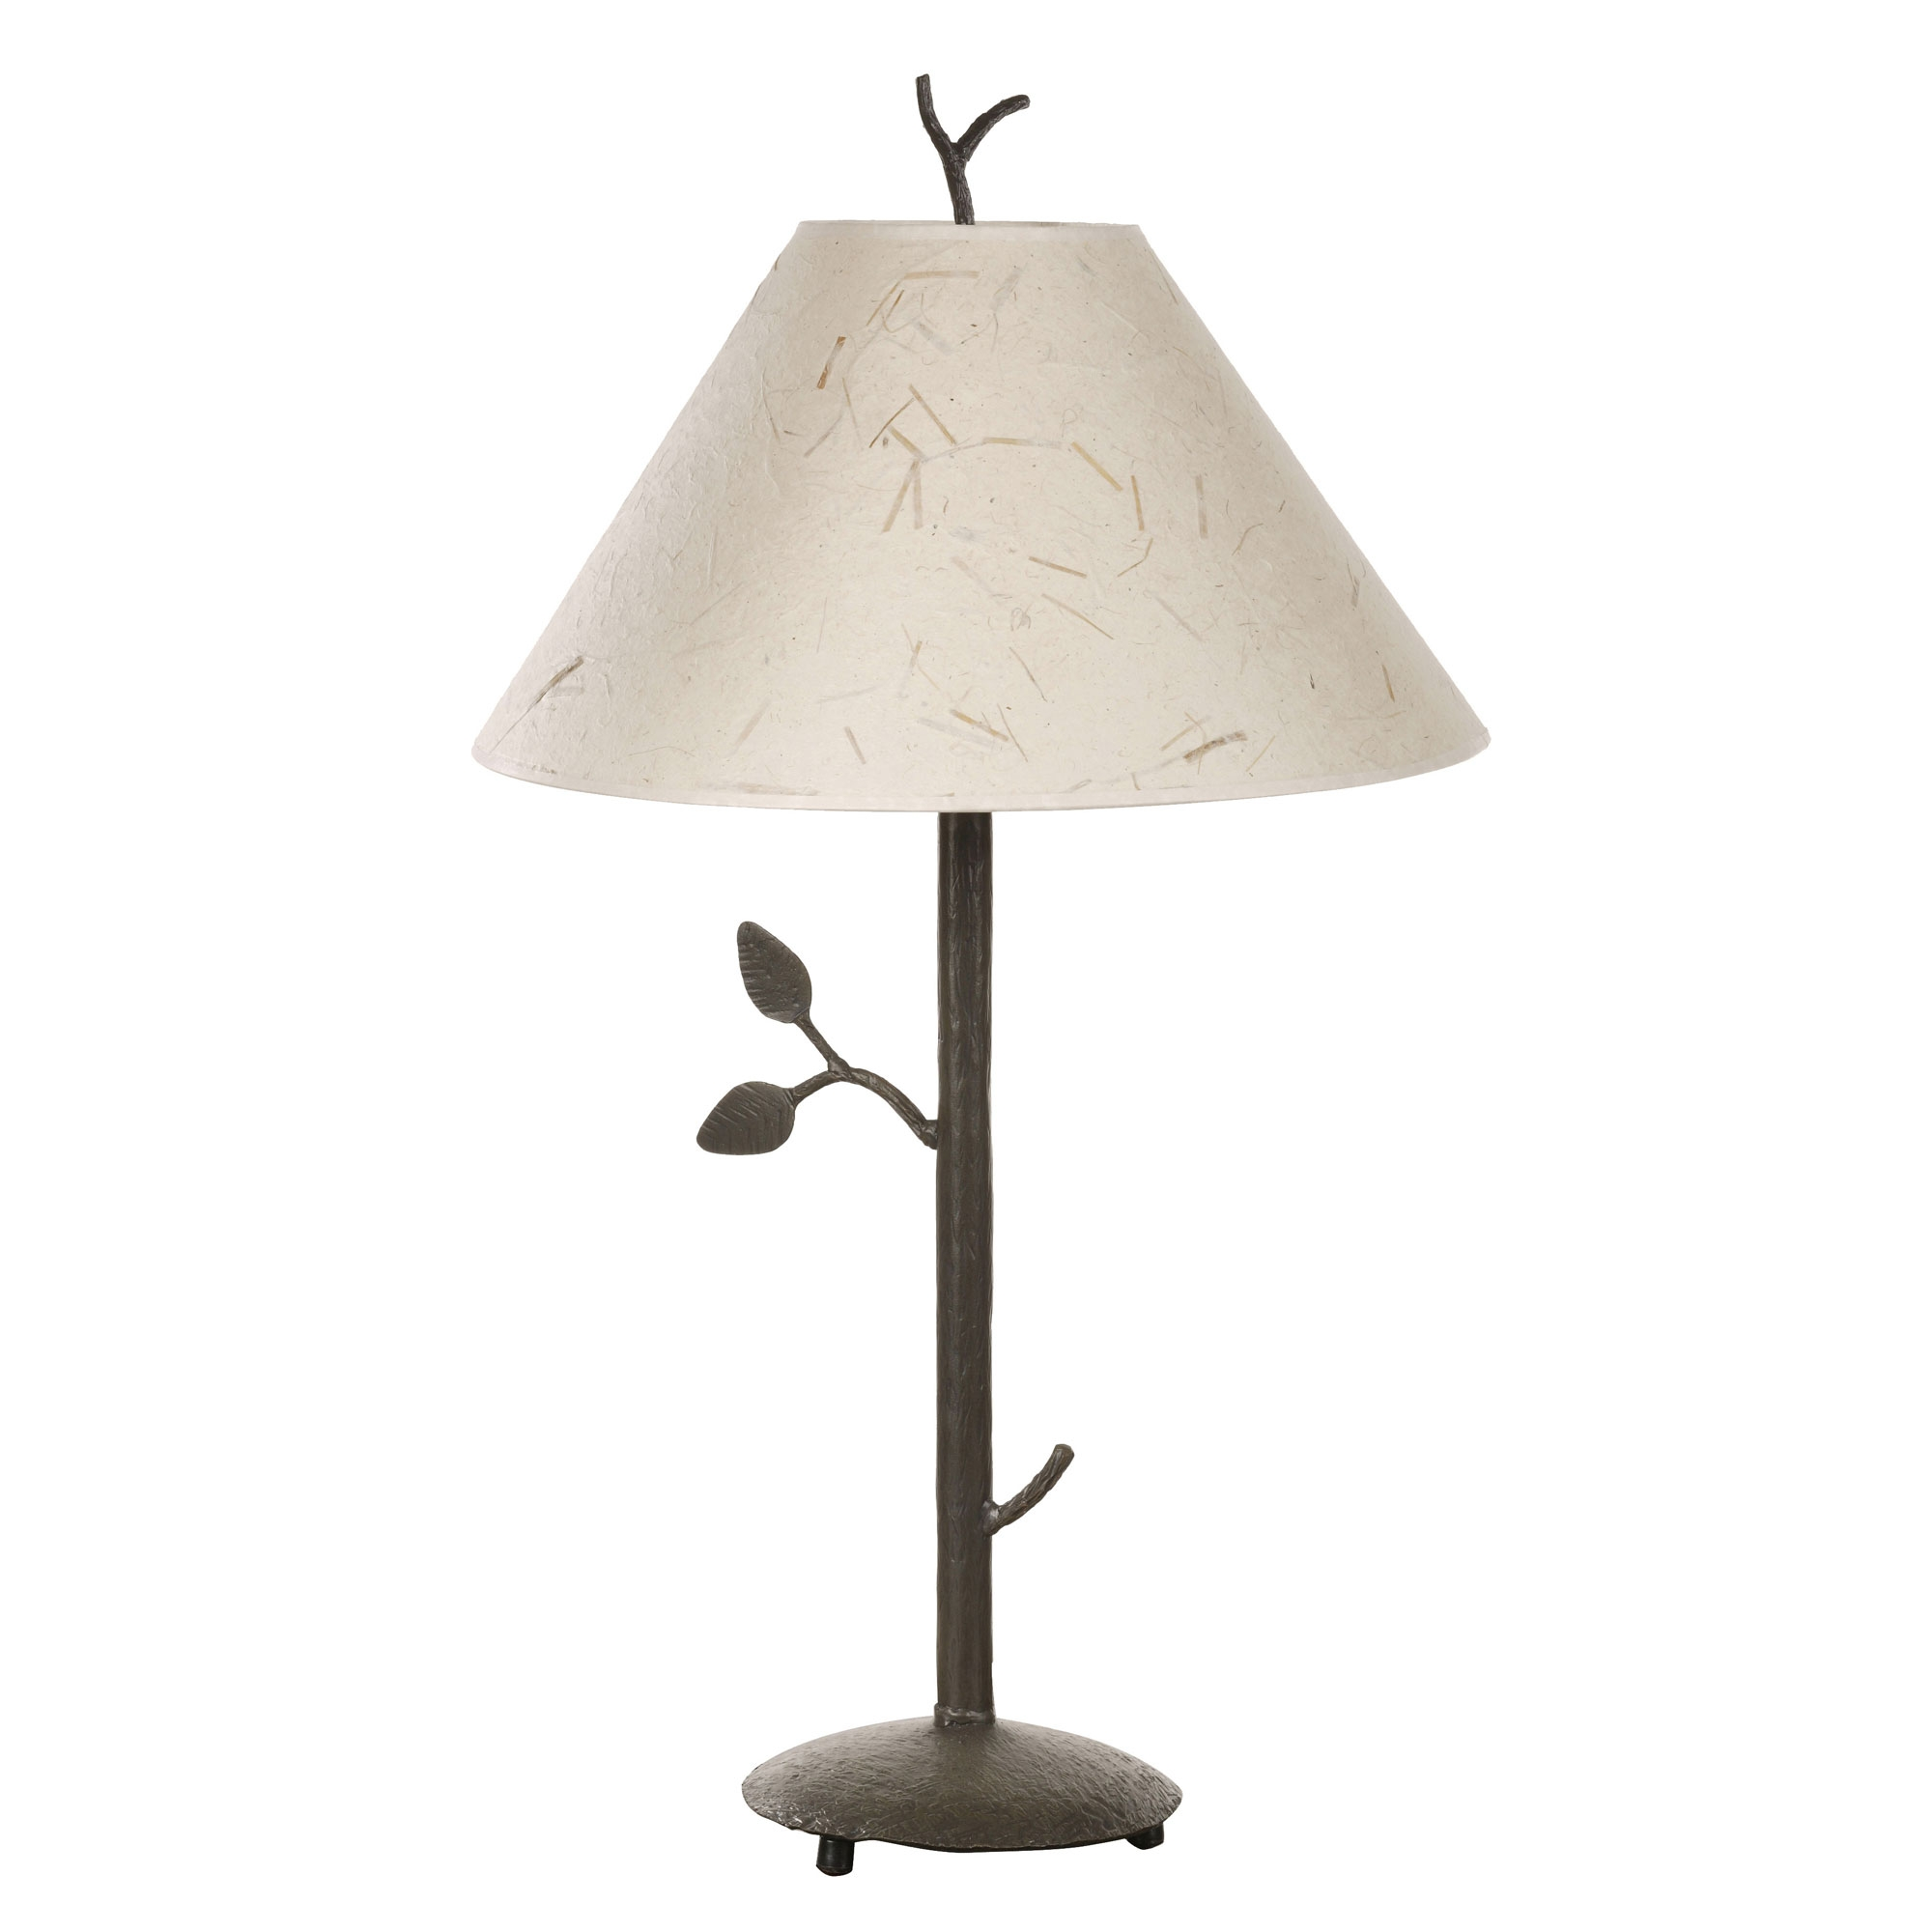 Wrought iron leaf collection table lamp by stone county ironworks leaf table lamp aloadofball Image collections